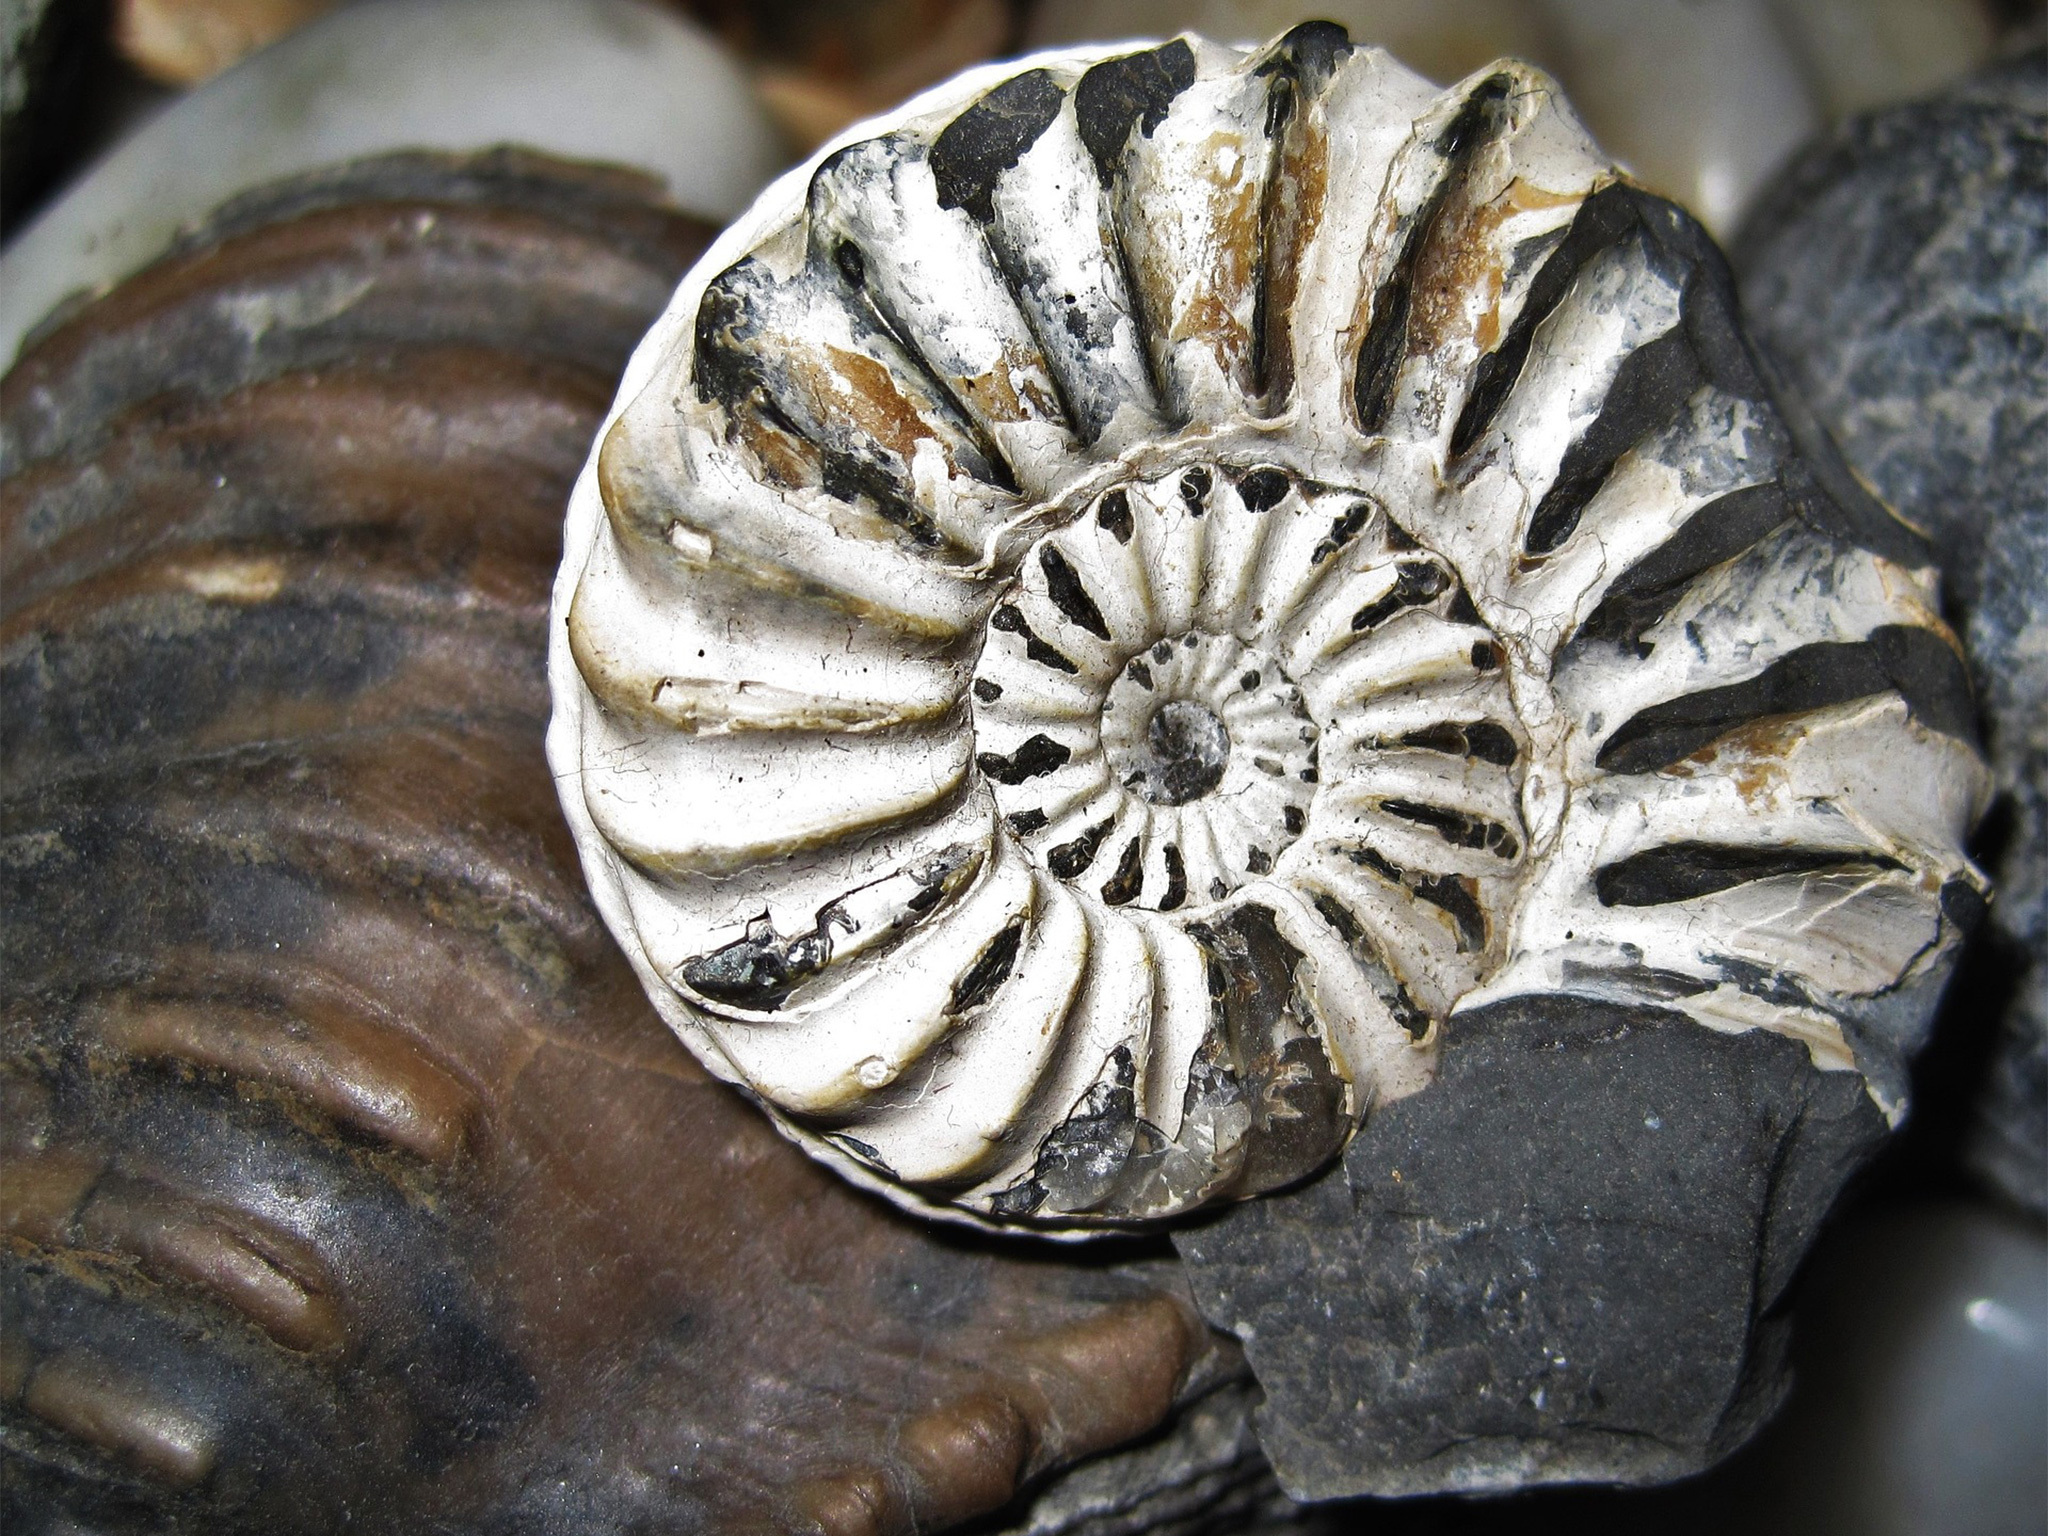 A shell-shaped fossil